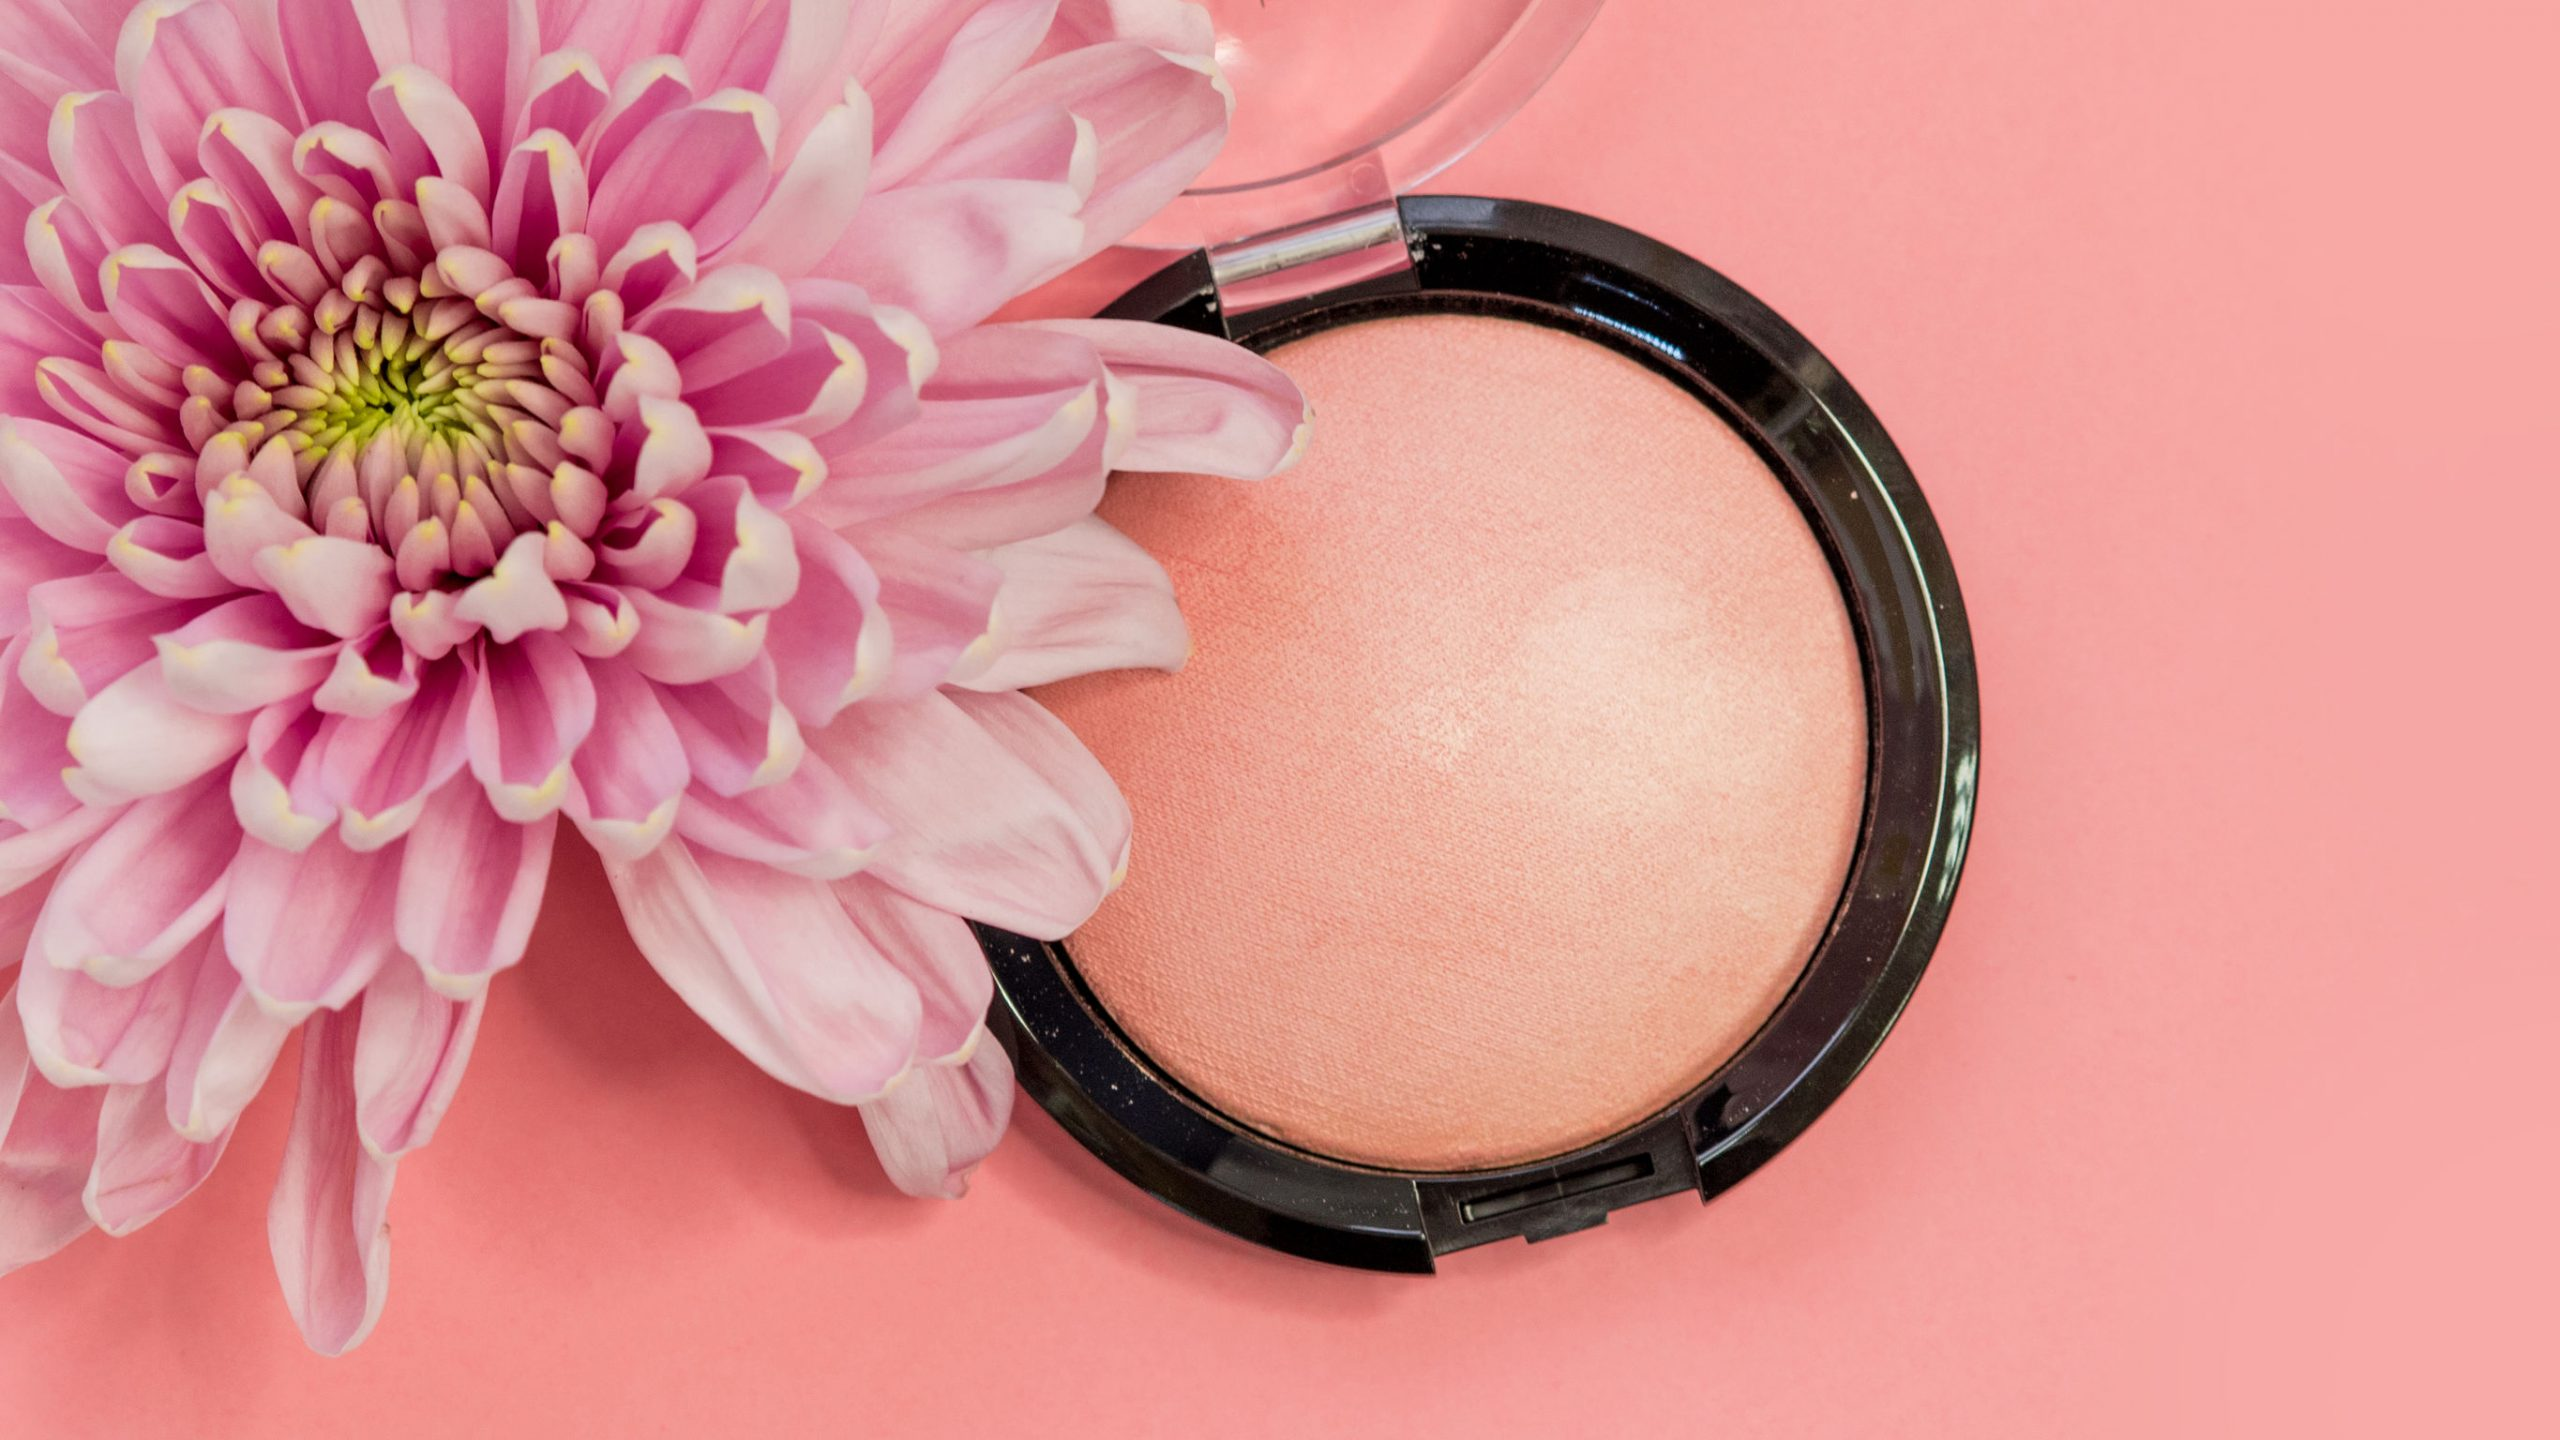 Best Blush 2021: Shopping Guide & Review